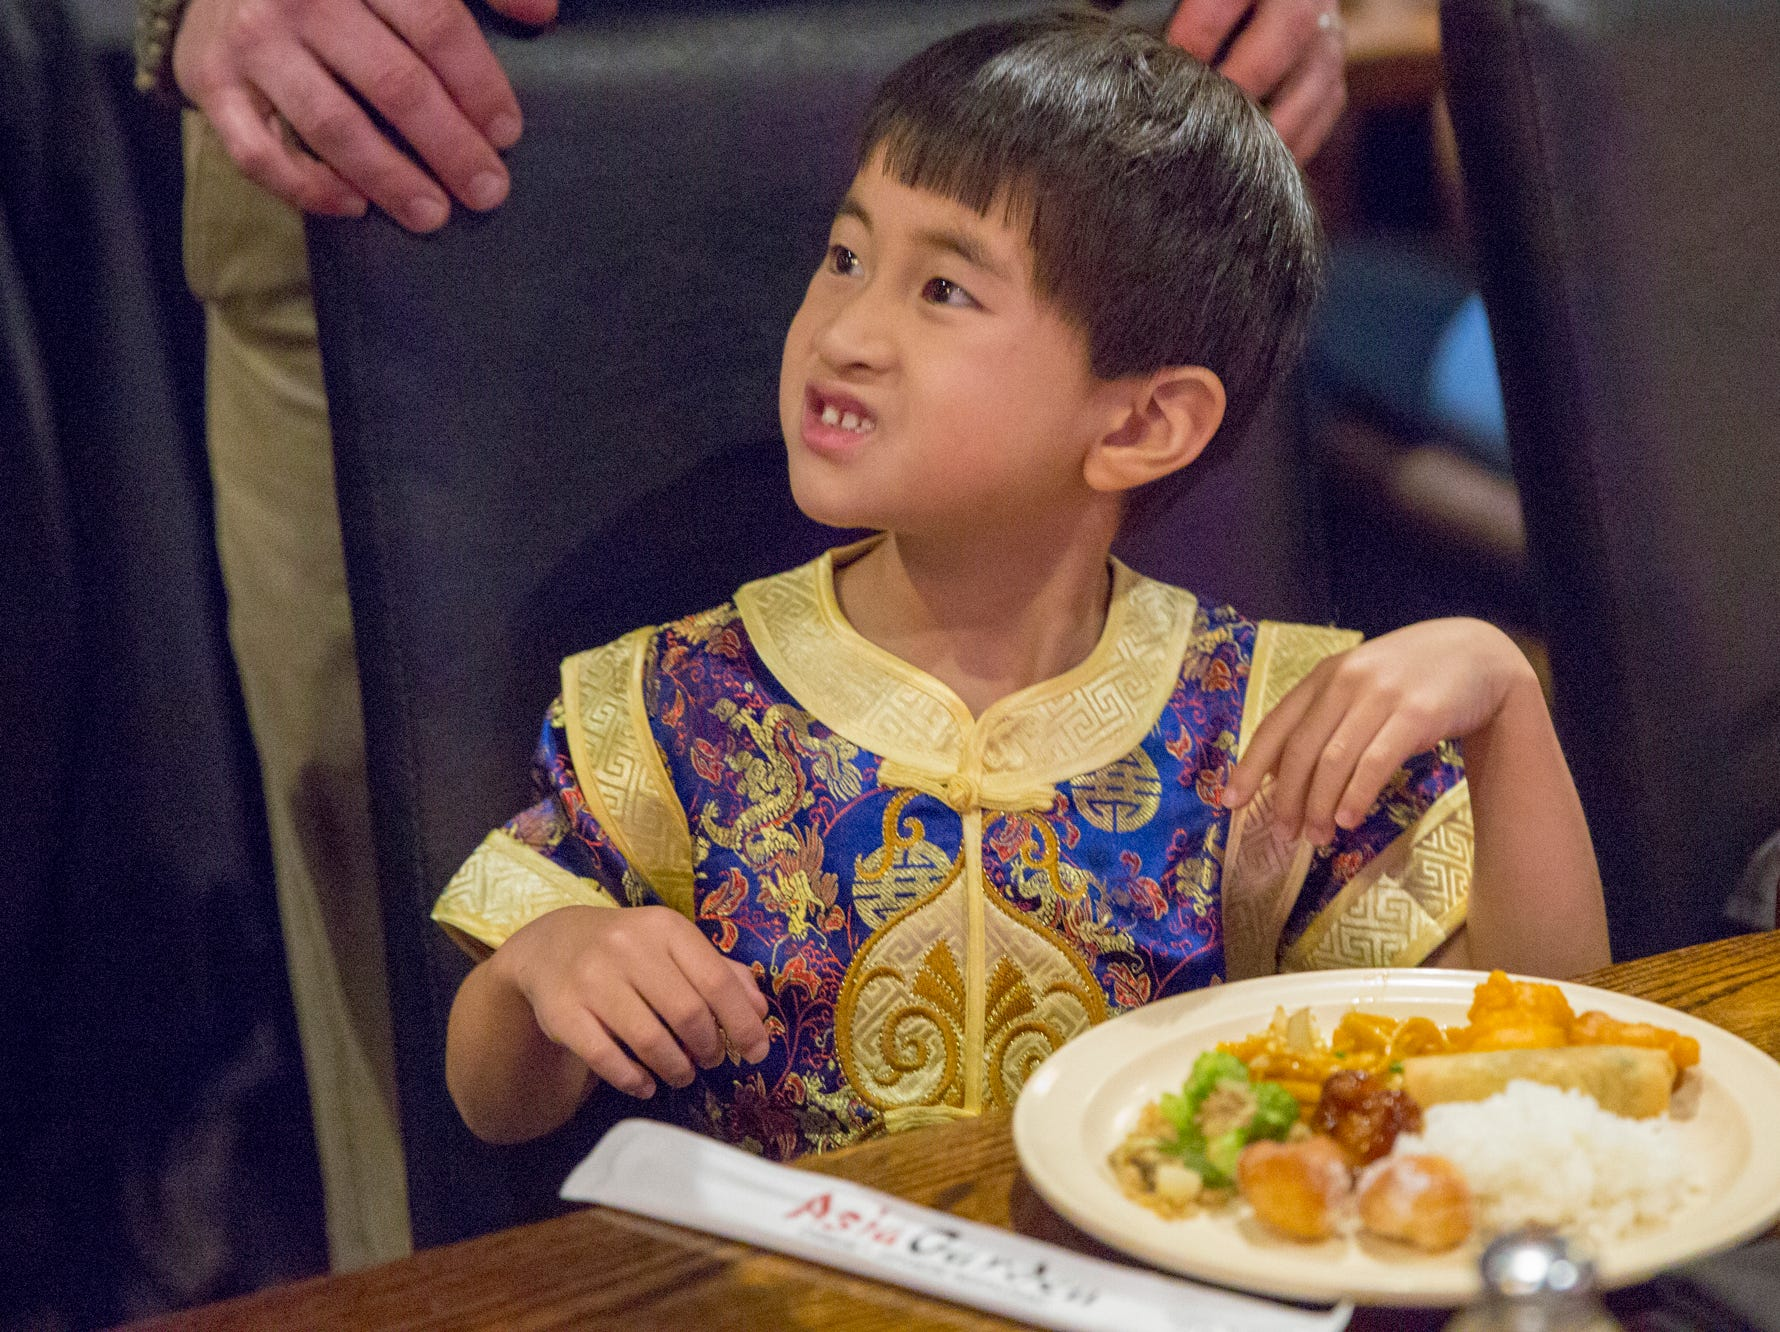 Charlie Nye, 5, looks toward his mom at the Chinese New Year party at Asia Garden Monday, Feb 4,2019